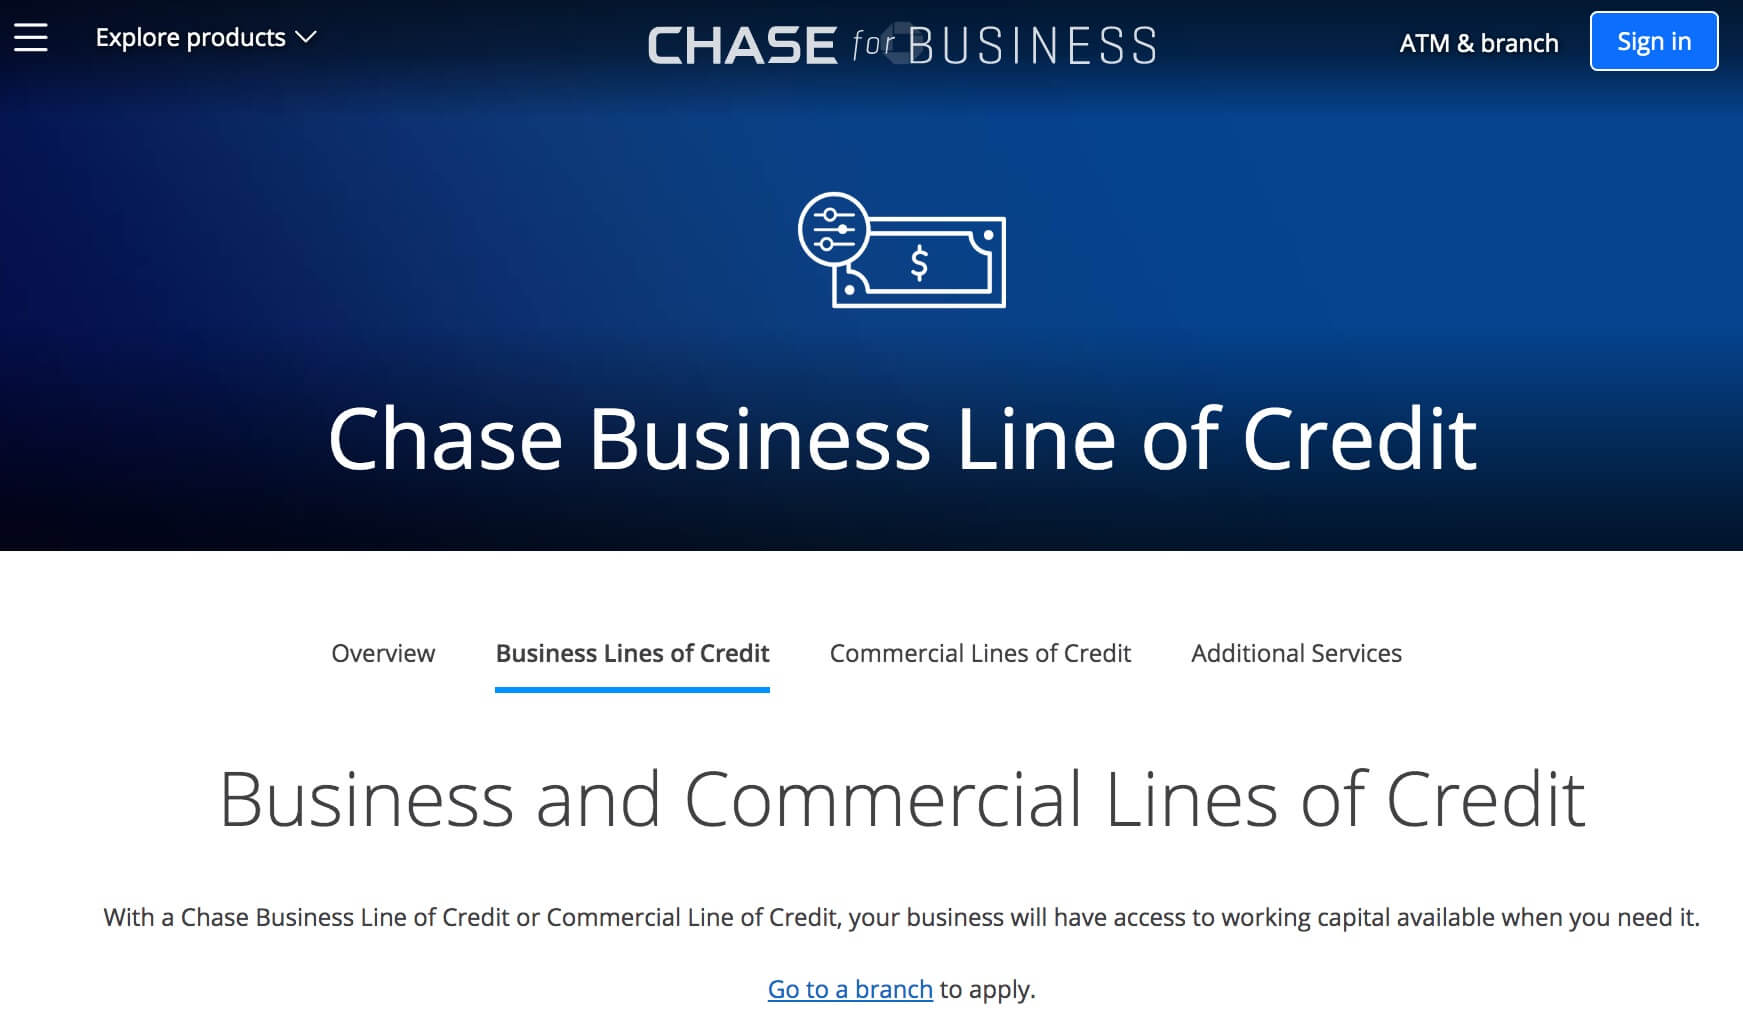 Chase business line of credit